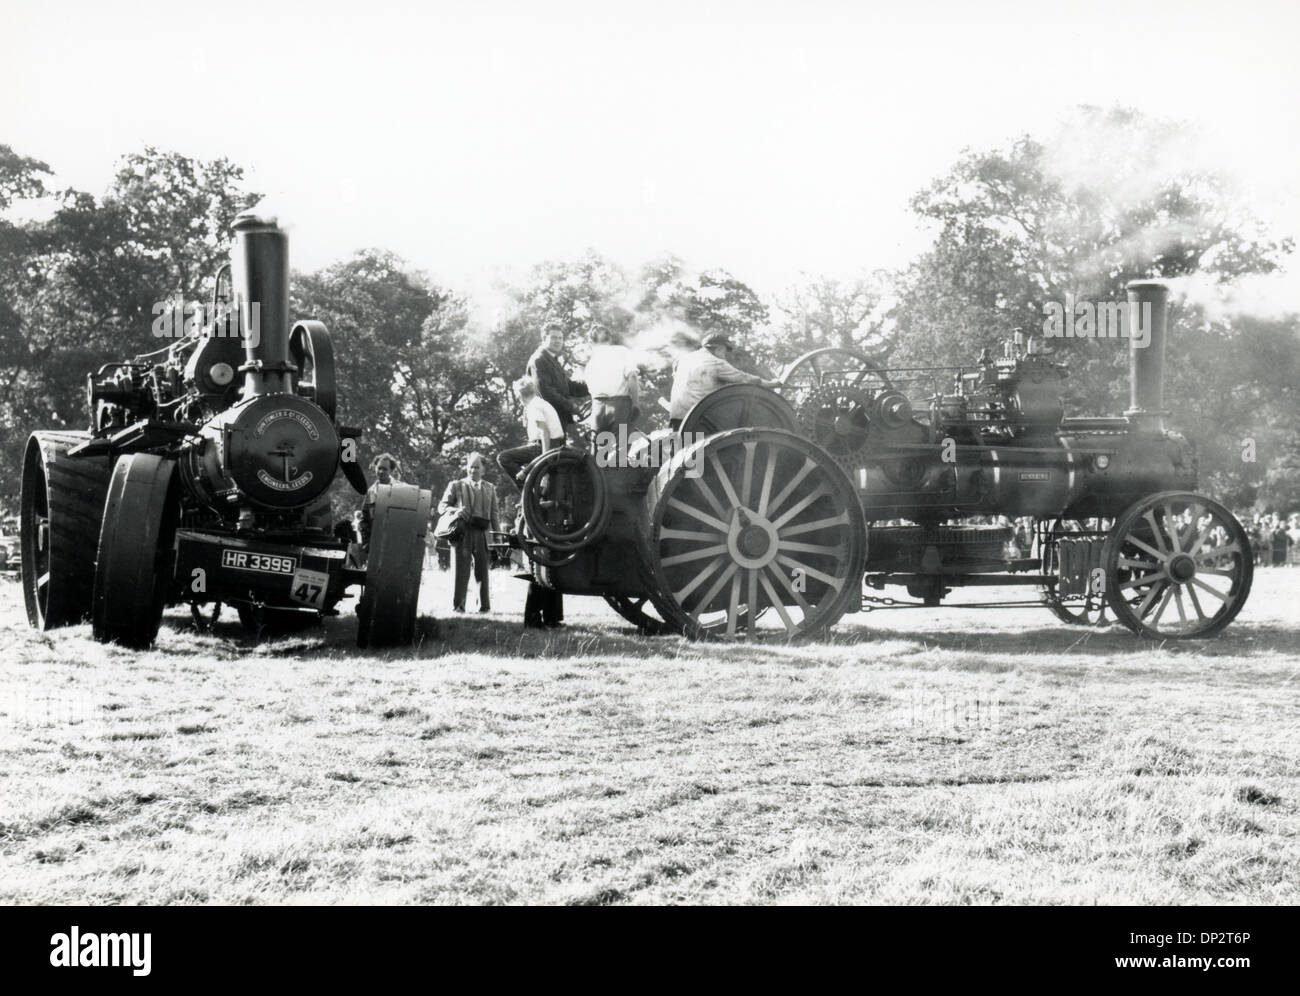 steam traction engines at a rally in the 1950s - Stock Image